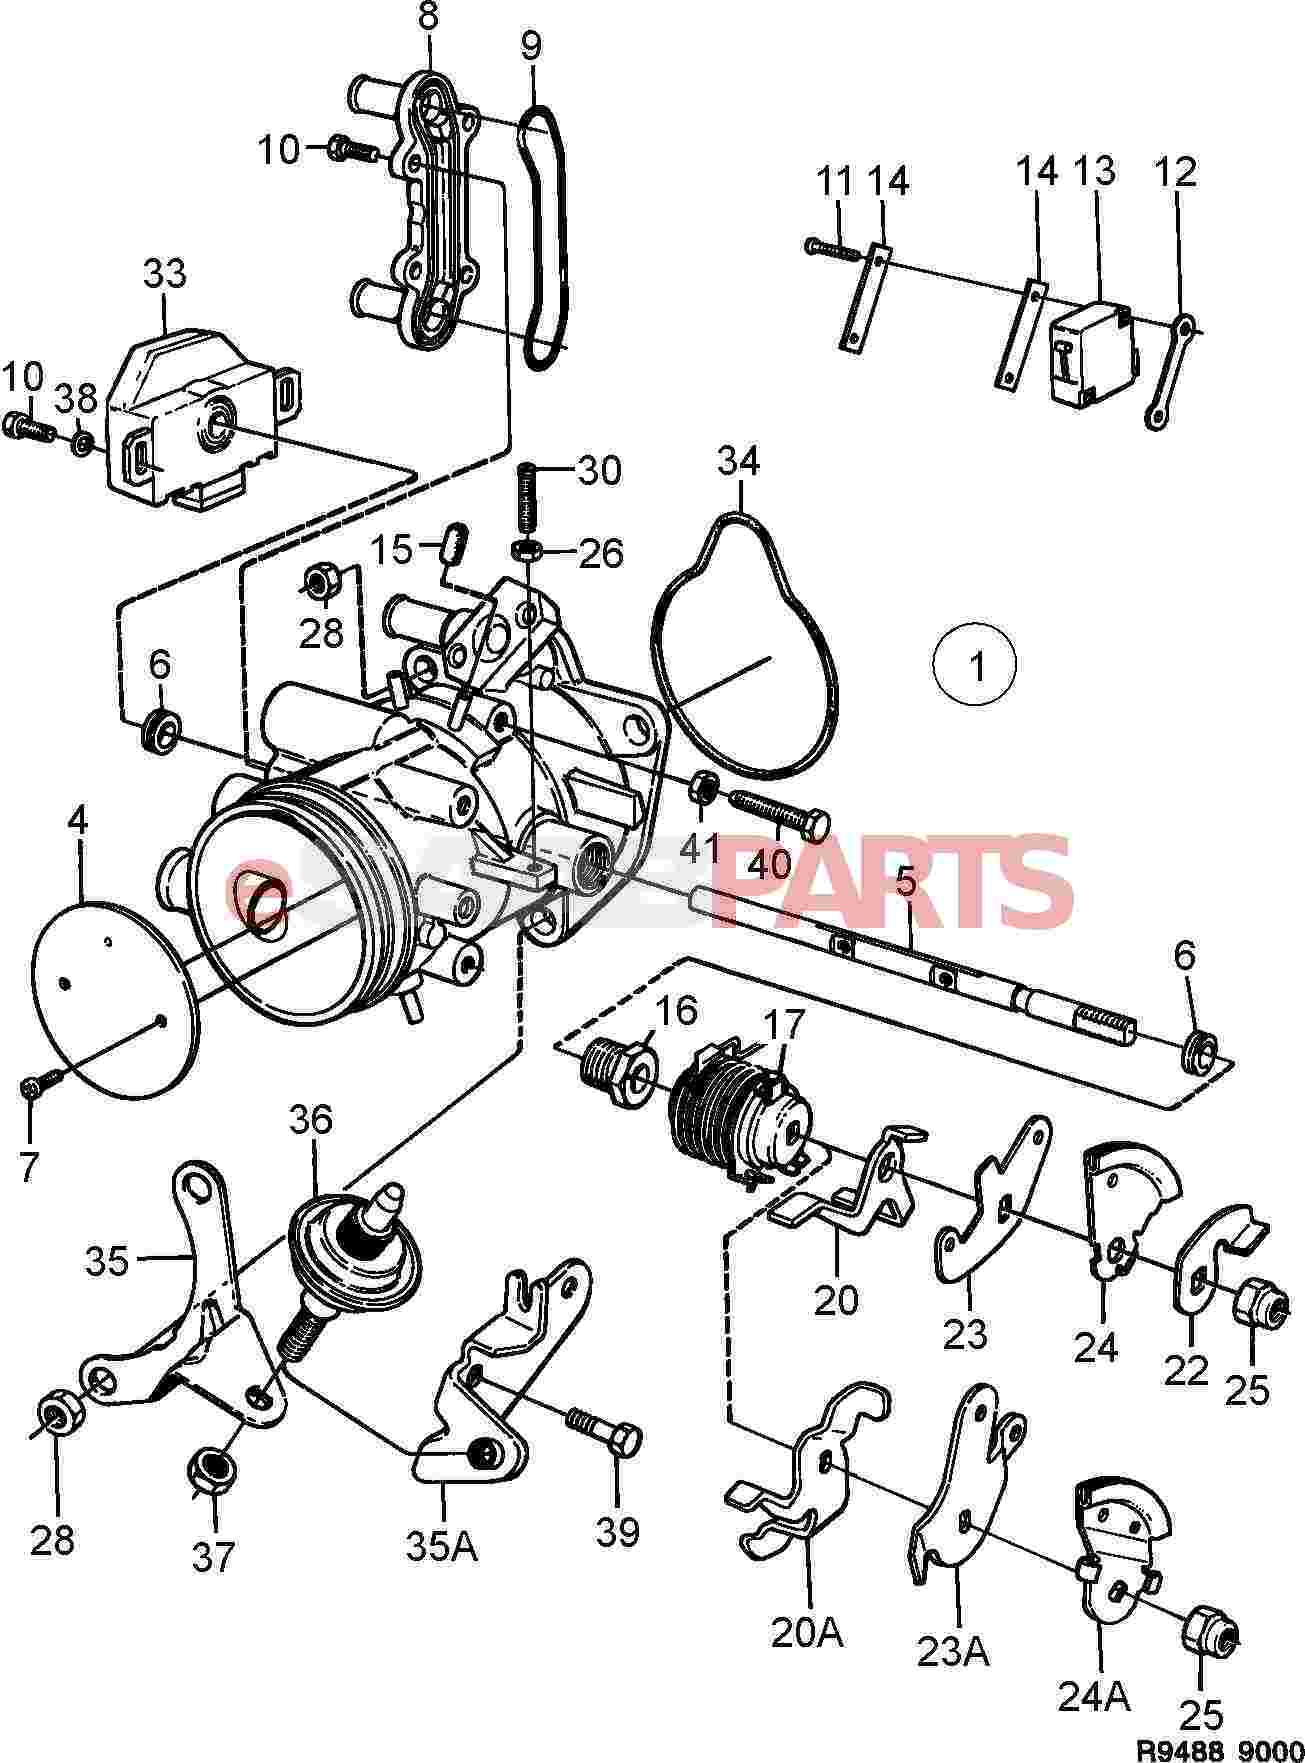 Saab 900 Instructions For A Ignition Switch